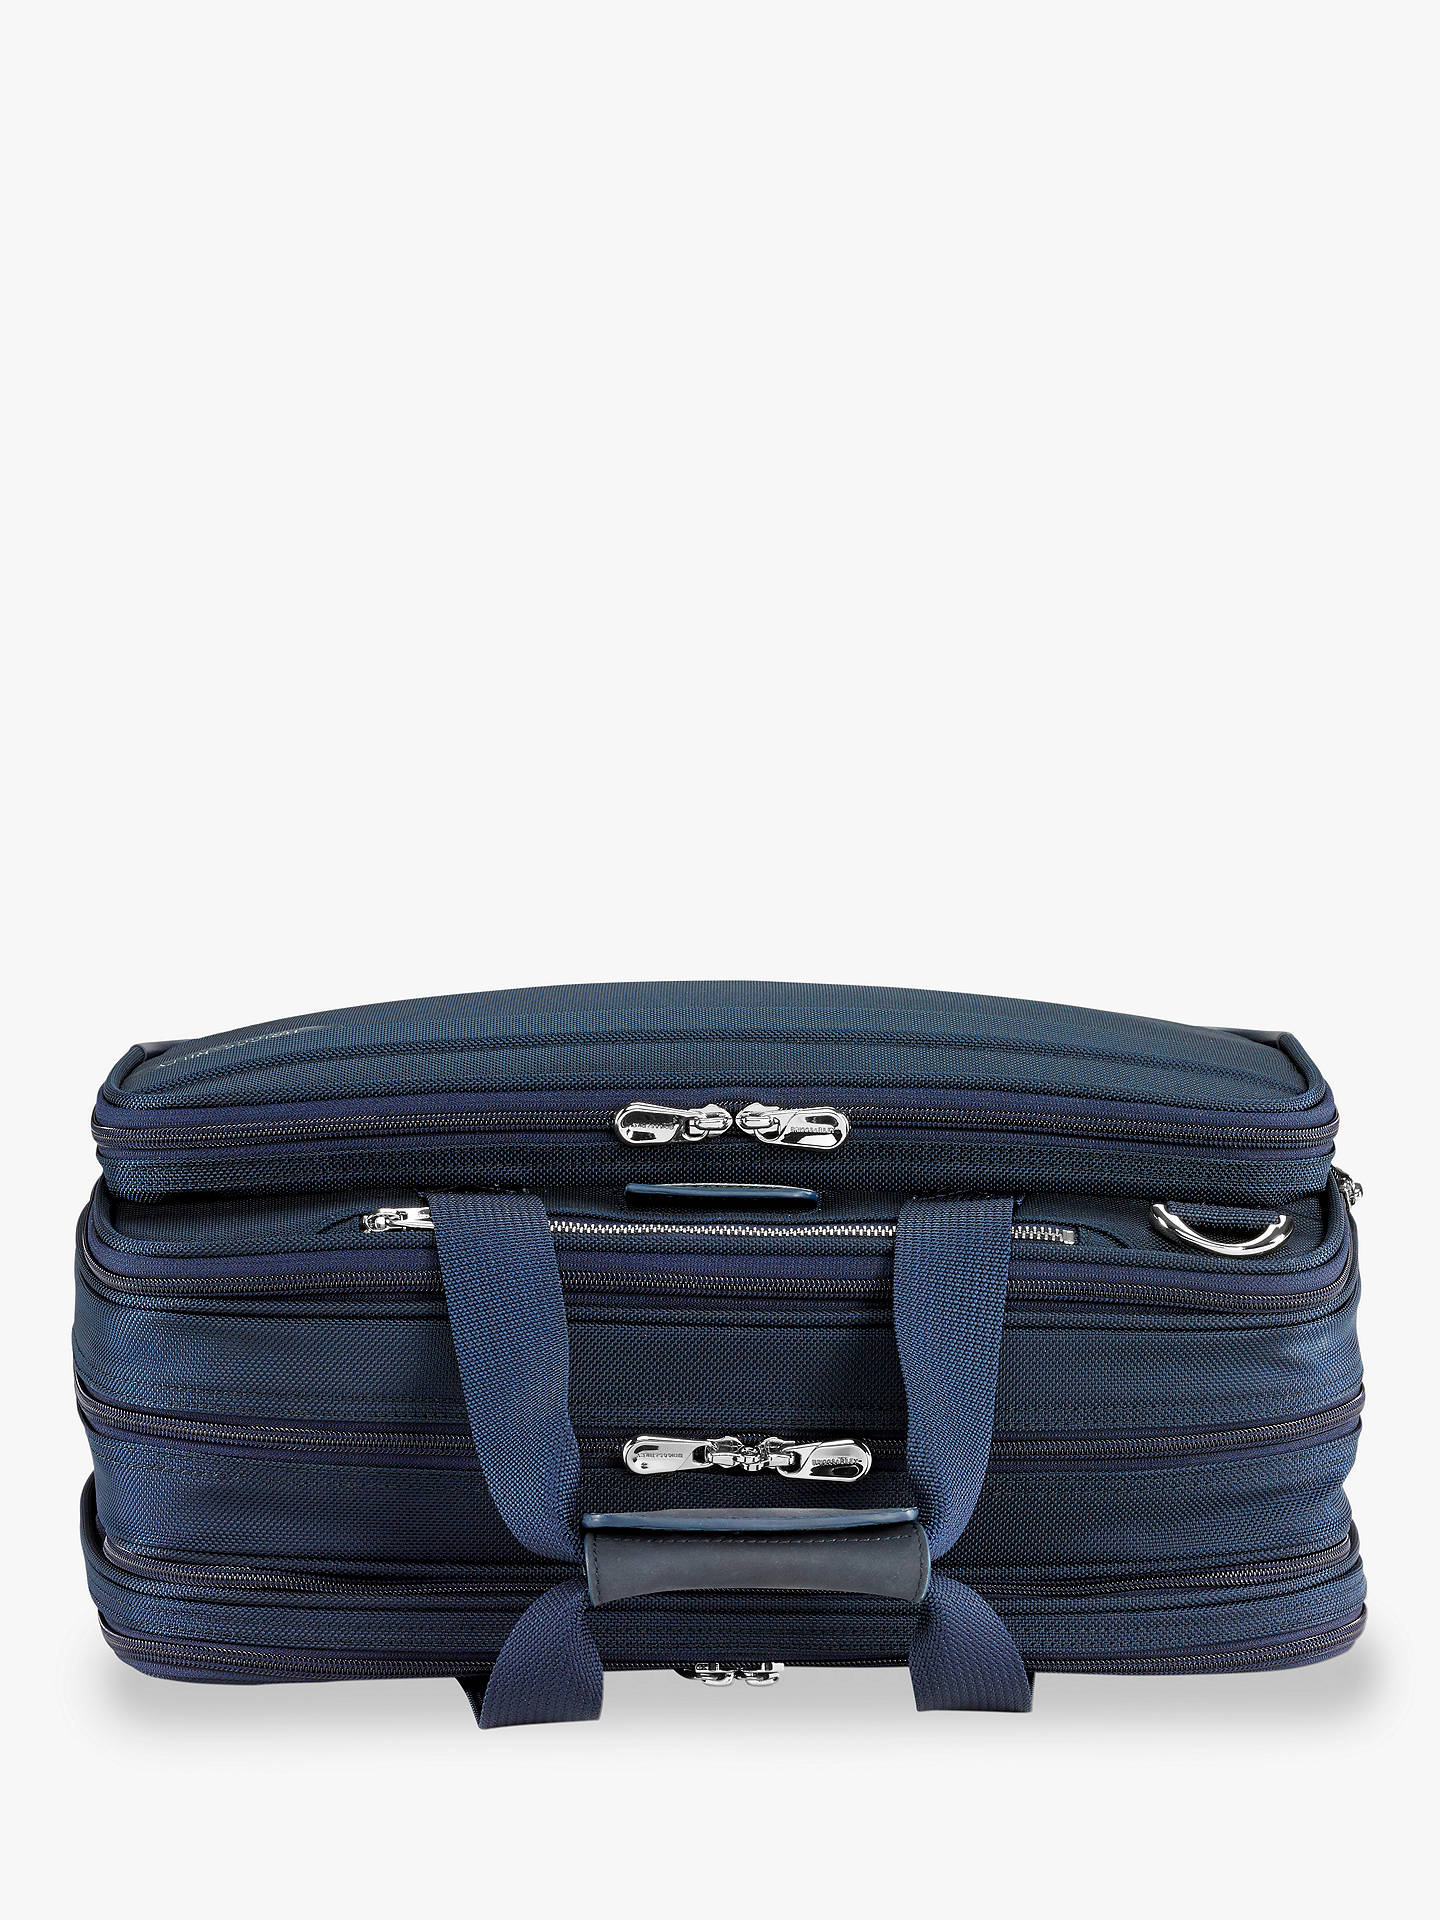 BuyBriggs & Riley Baseline Expandable Cabin Bag, Navy Online at johnlewis.com